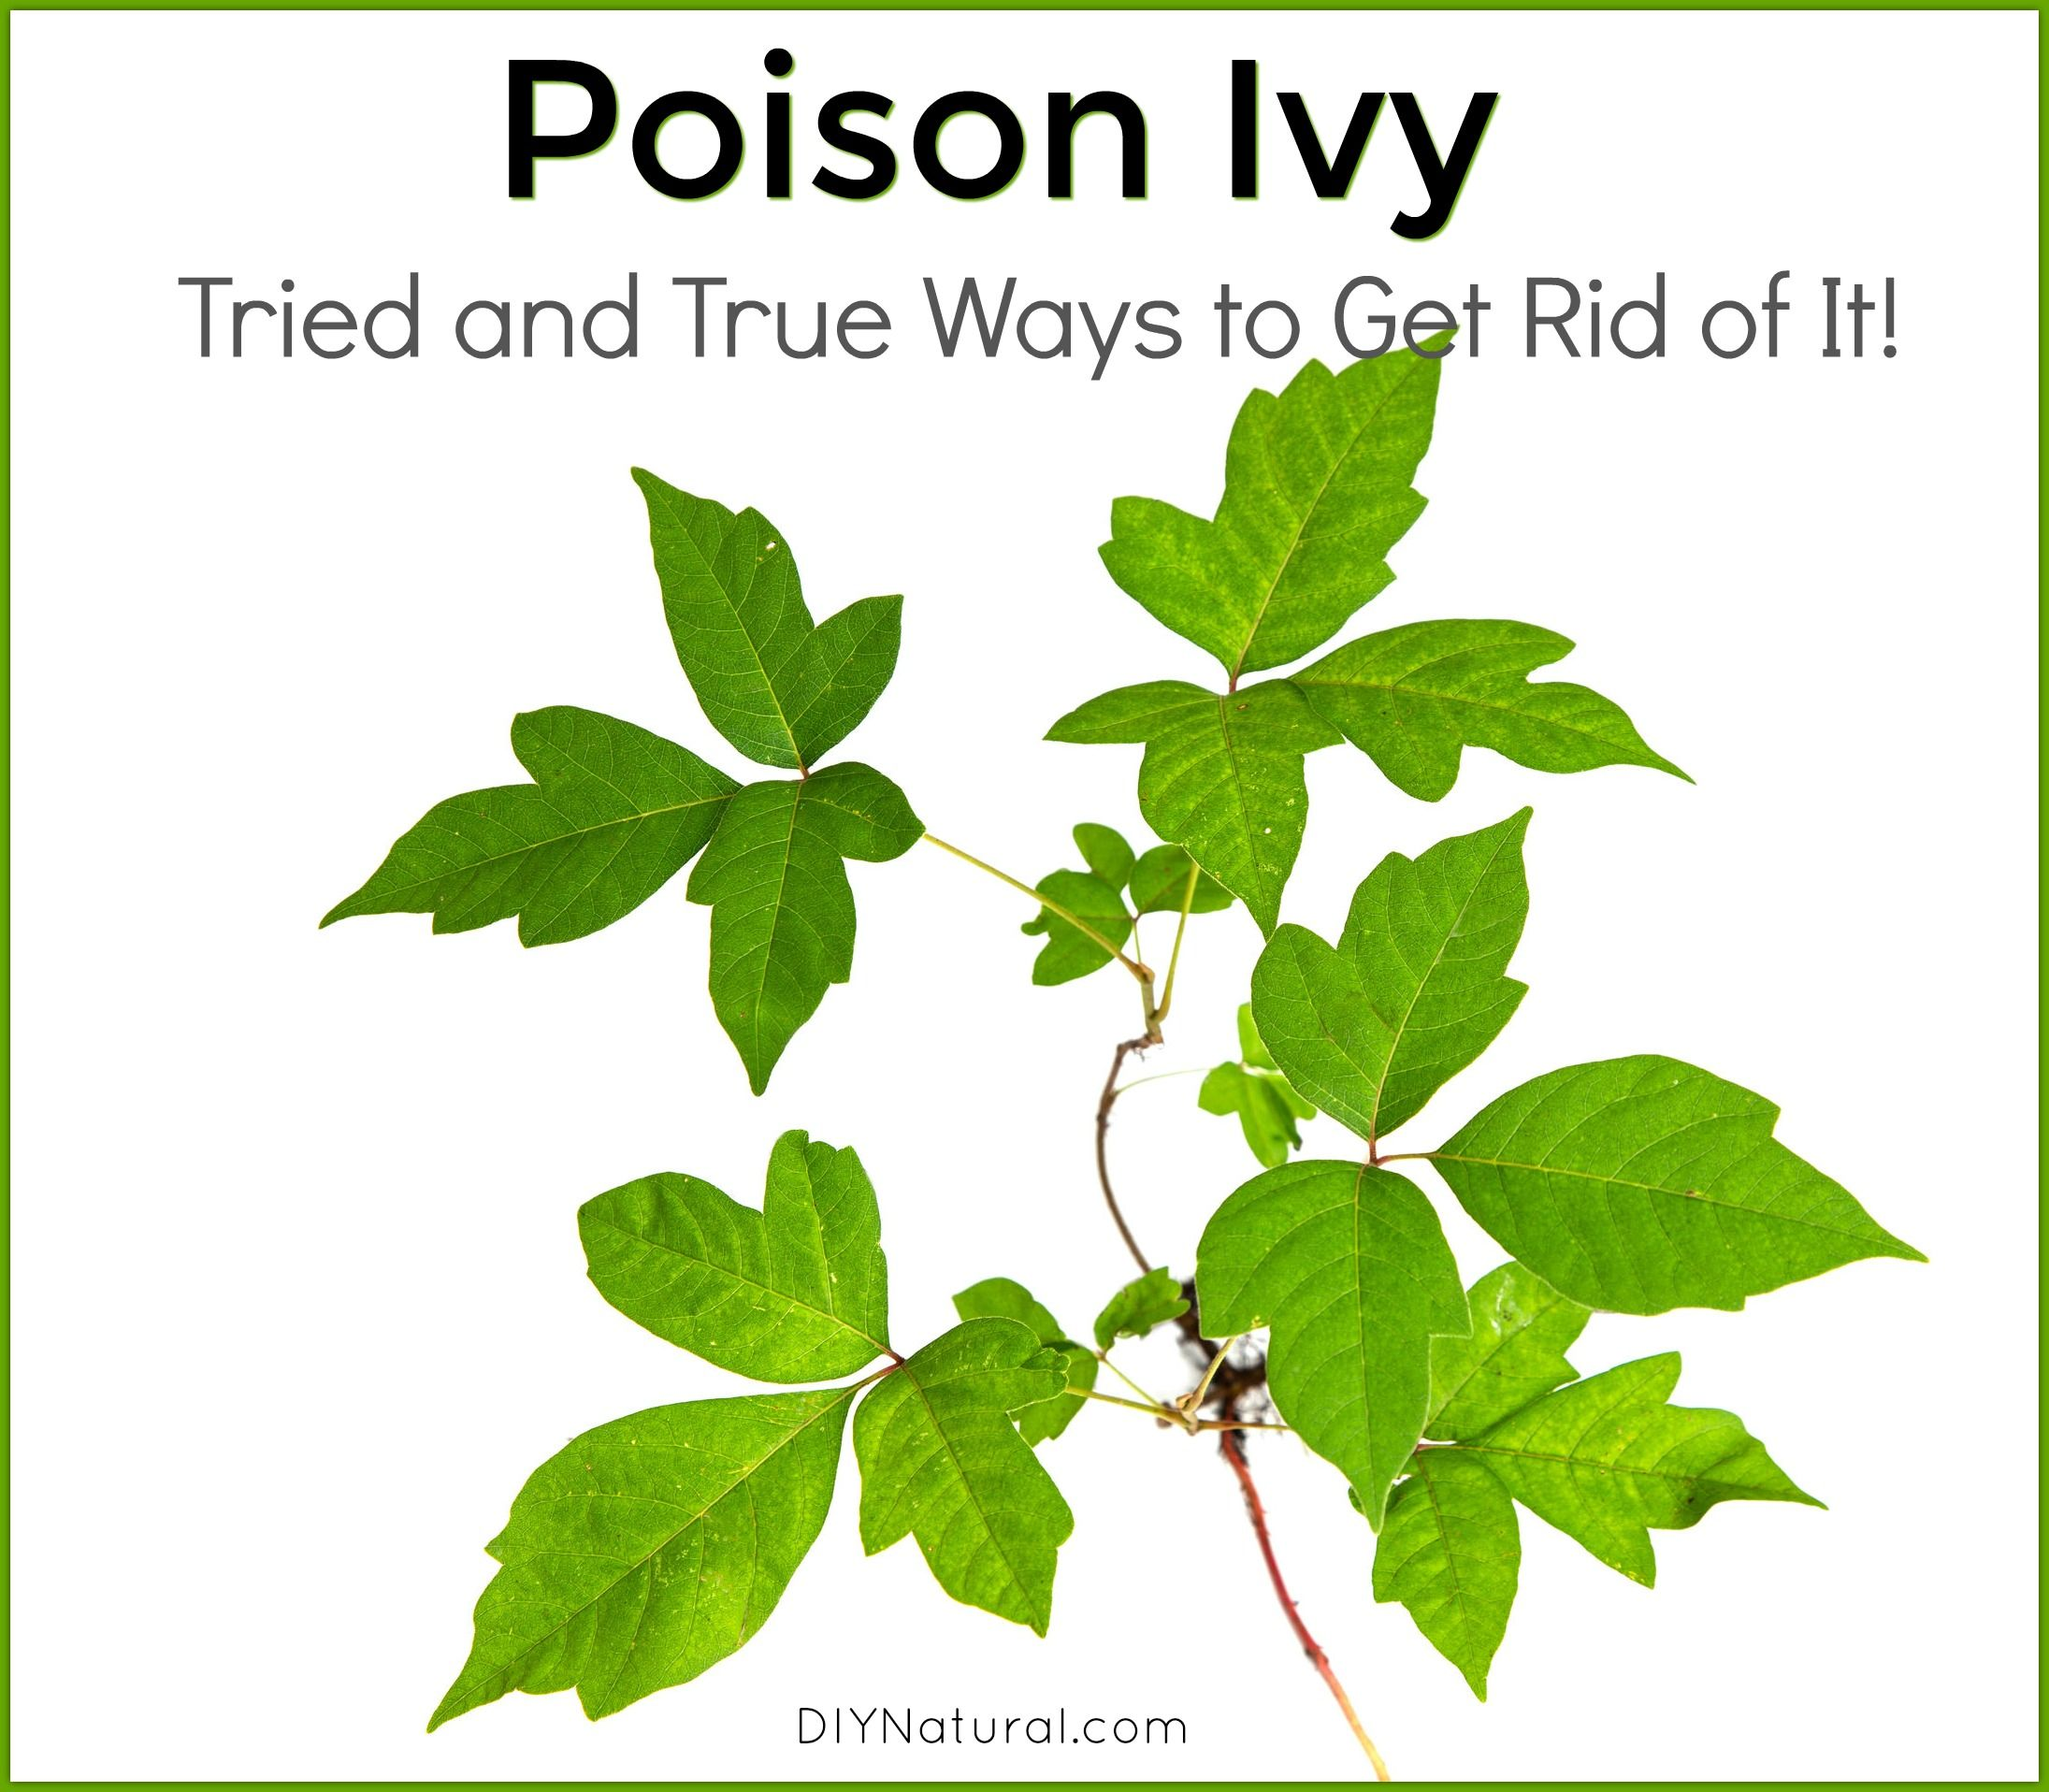 51ccde66a027a1d6a2181500e7e37e96 - How To Get Poison Ivy Oil Out Of Clothes